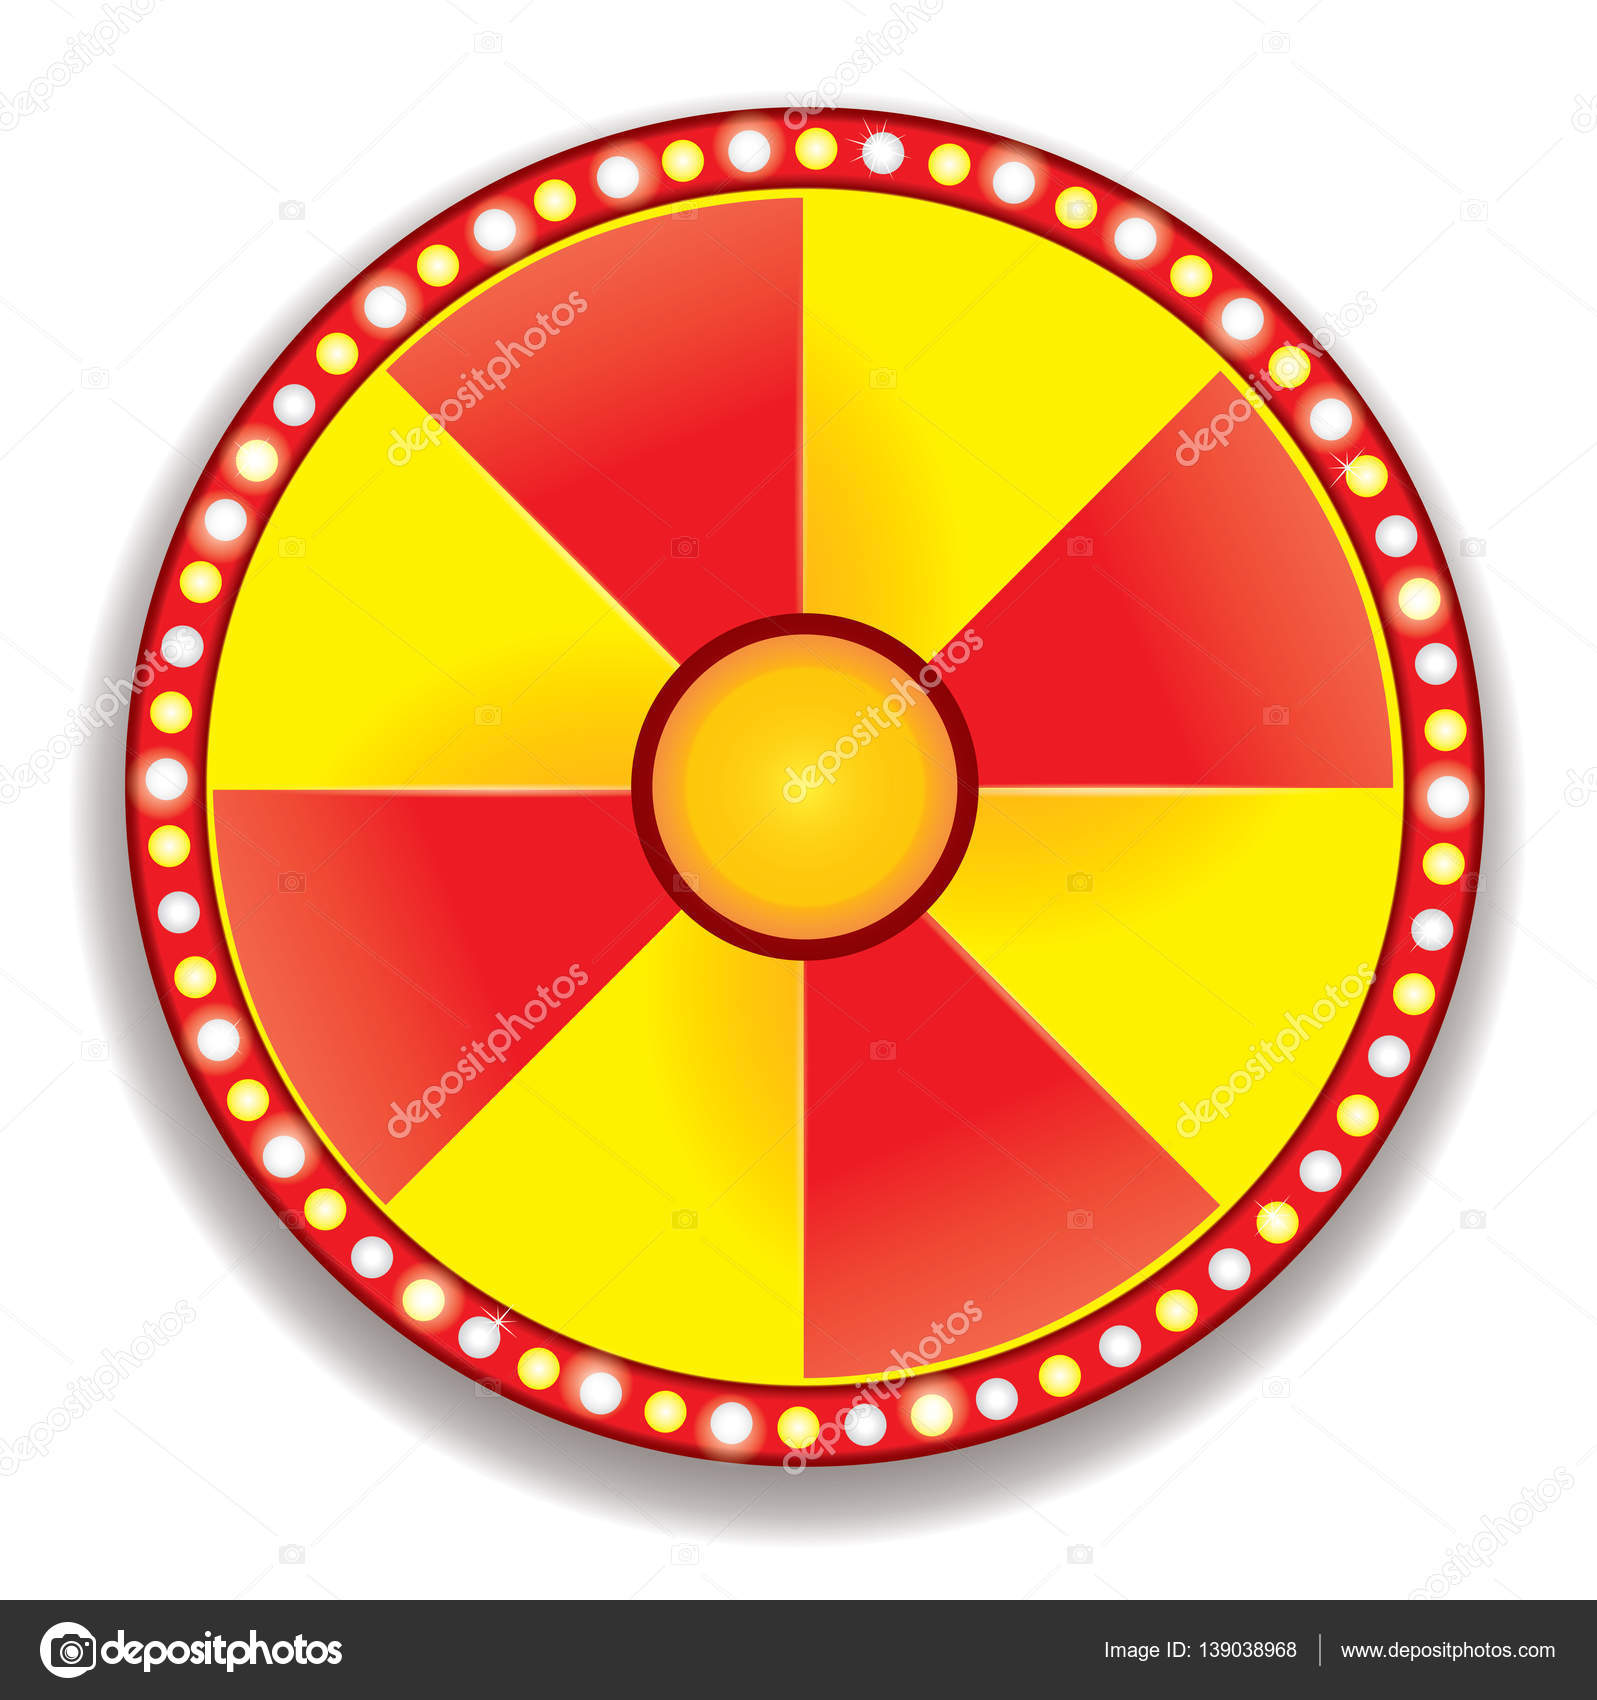 Red And Yellow Color Wheel Of Fortune Stock Vector